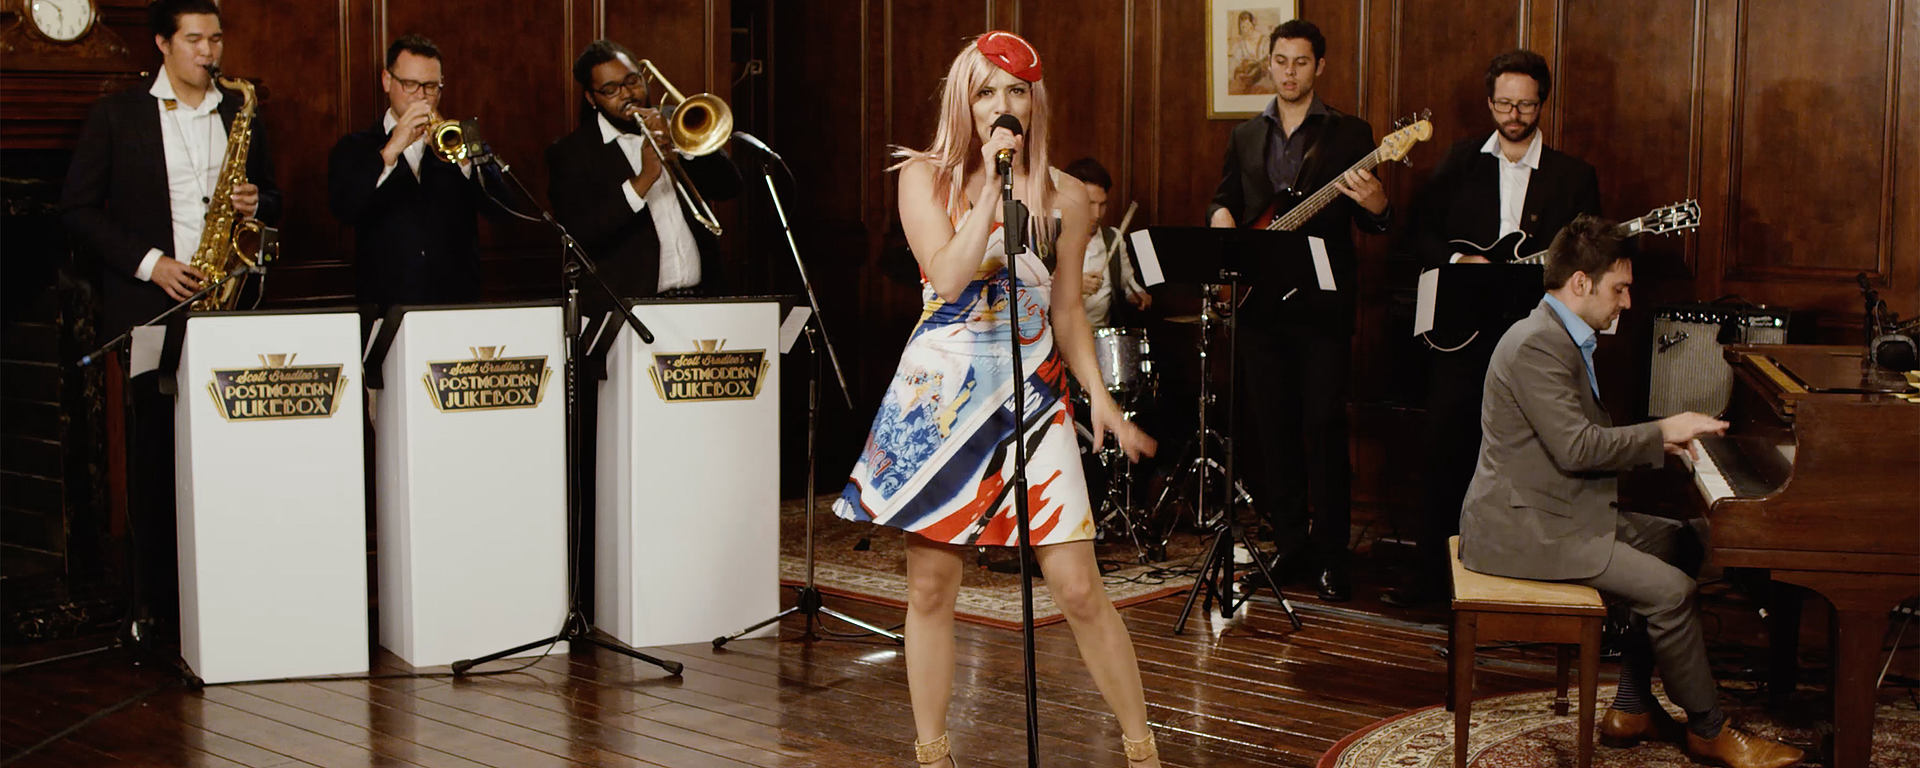 Postmodern Jukebox using high quality mics from LEWITT [Photo: ©Postmodern Jukebox]